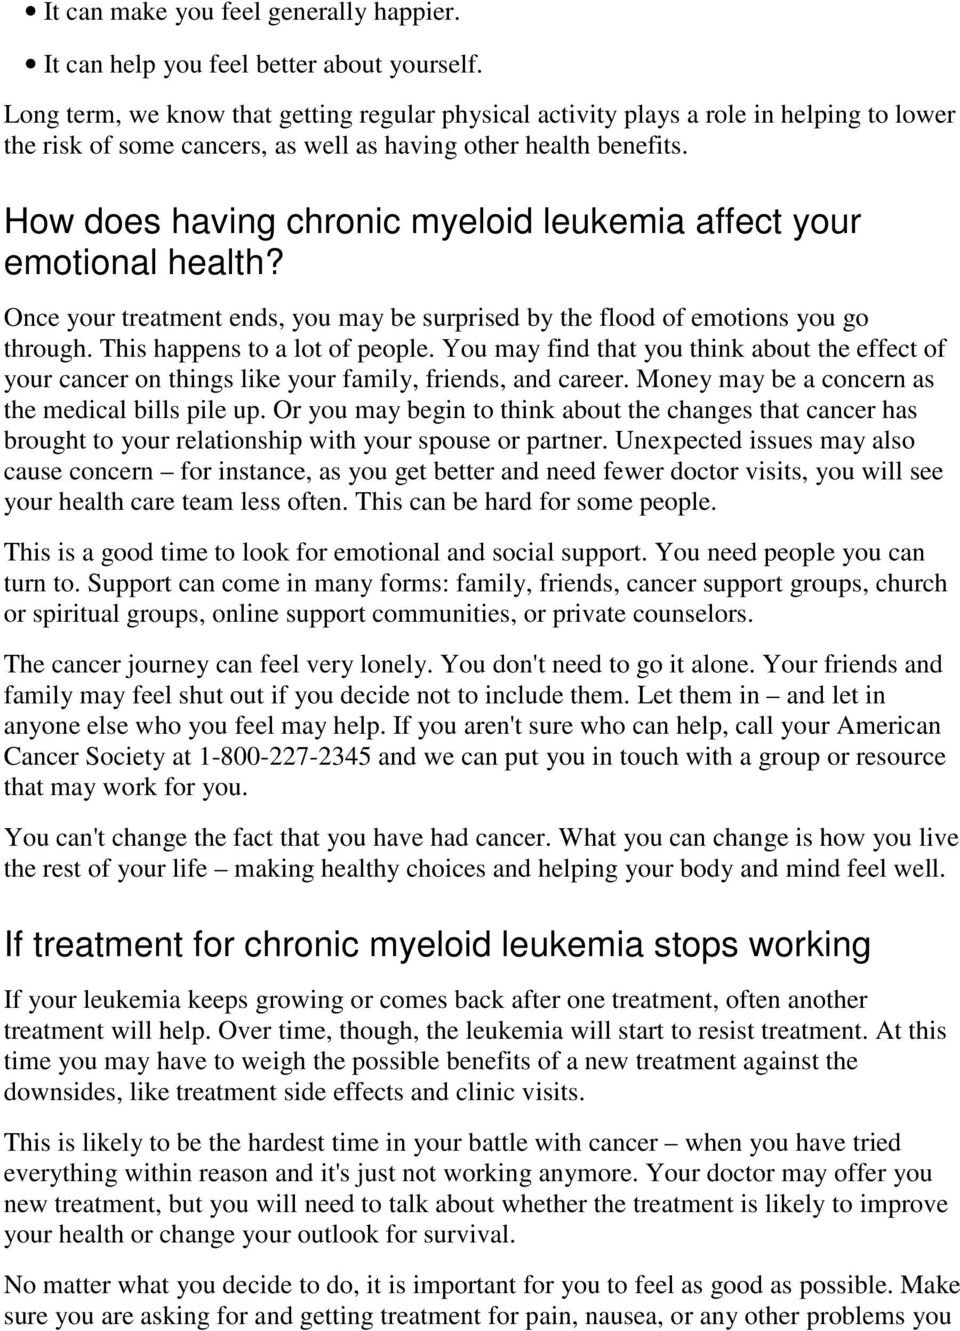 How does having chronic myeloid leukemia affect your emotional health? Once your treatment ends, you may be surprised by the flood of emotions you go through. This happens to a lot of people.